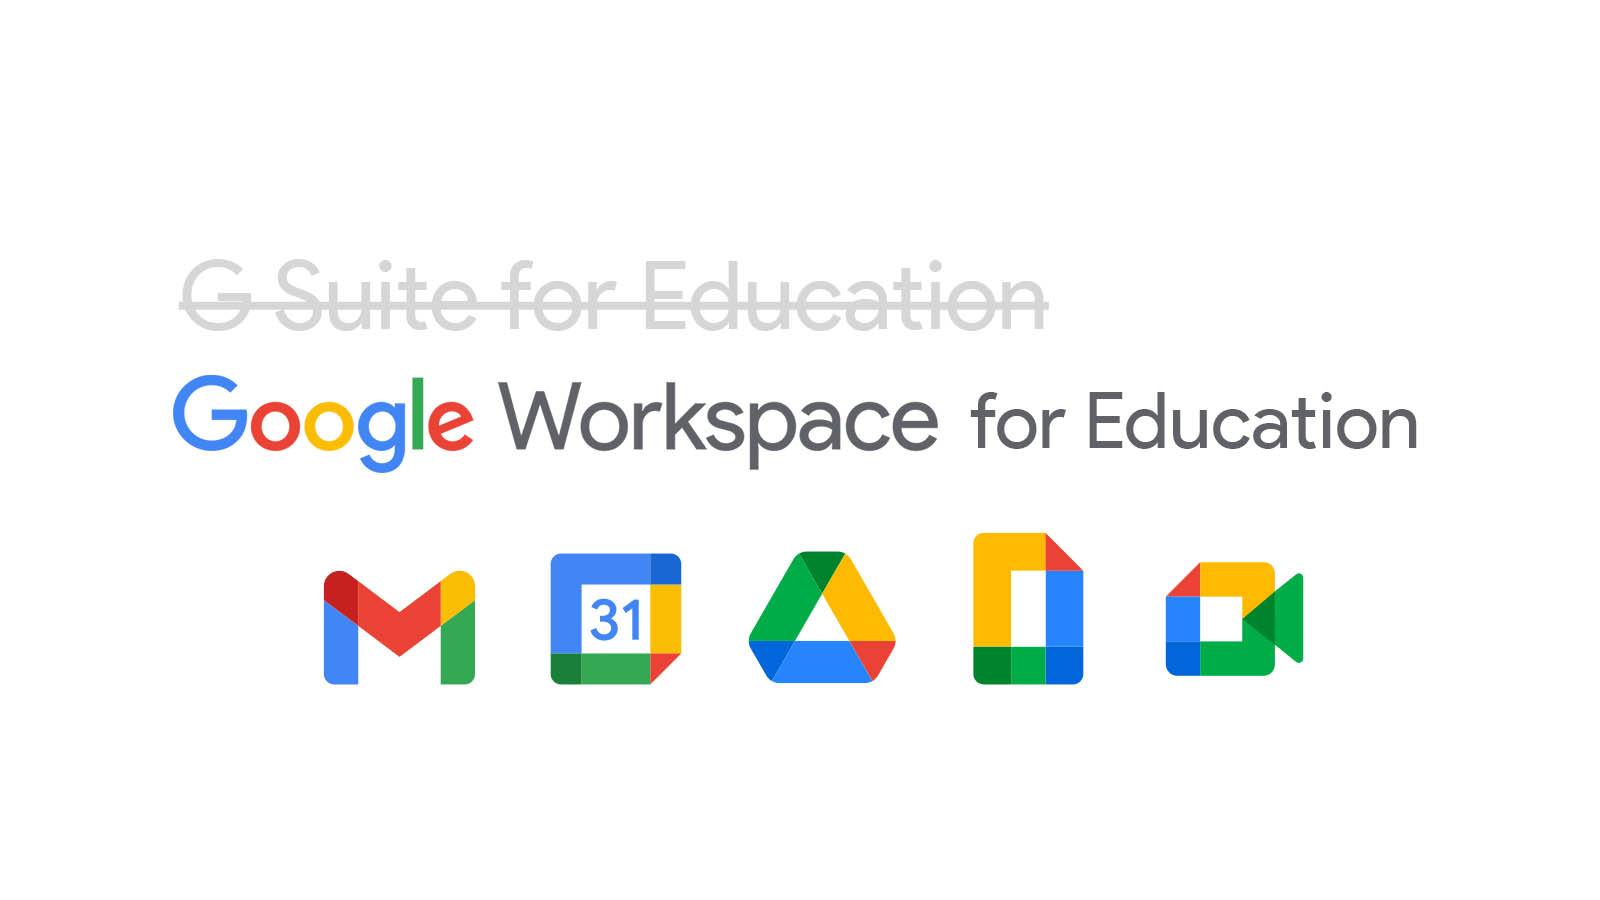 Enterprise and G Suite for Education are dead. Long live Google Workspace for Education